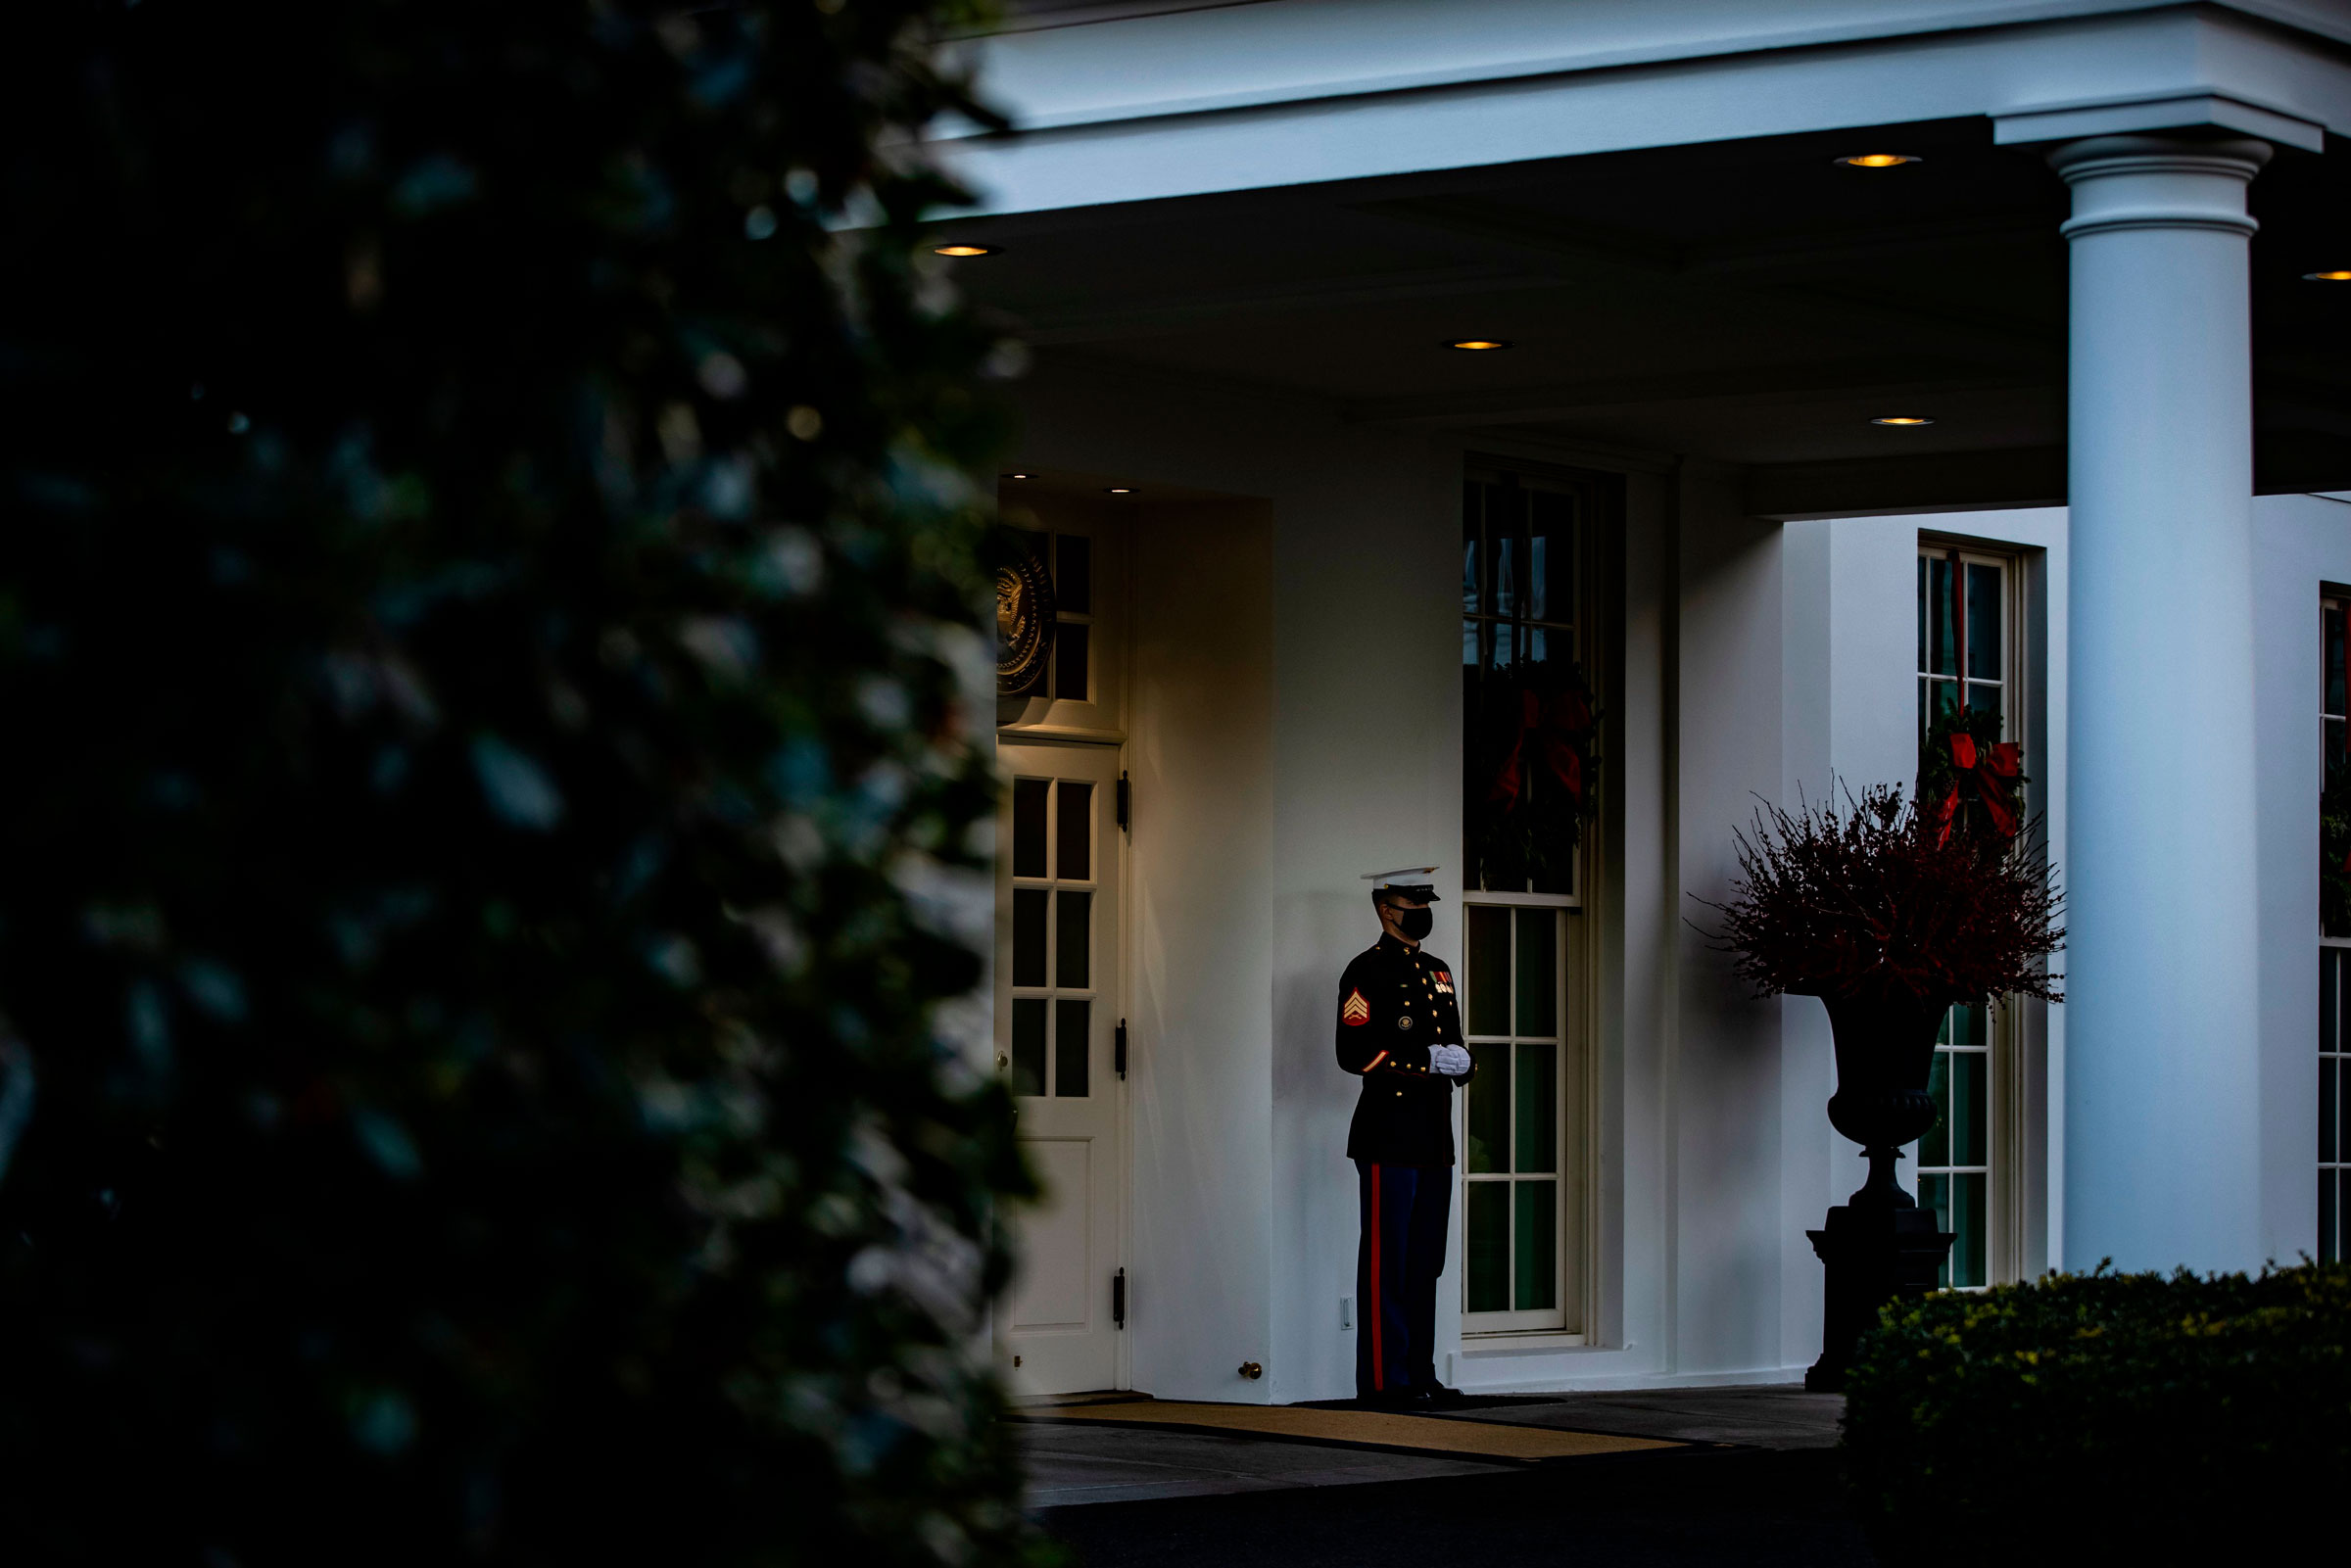 A US Marine stands guard outside the West Wing of the White House on Monday.